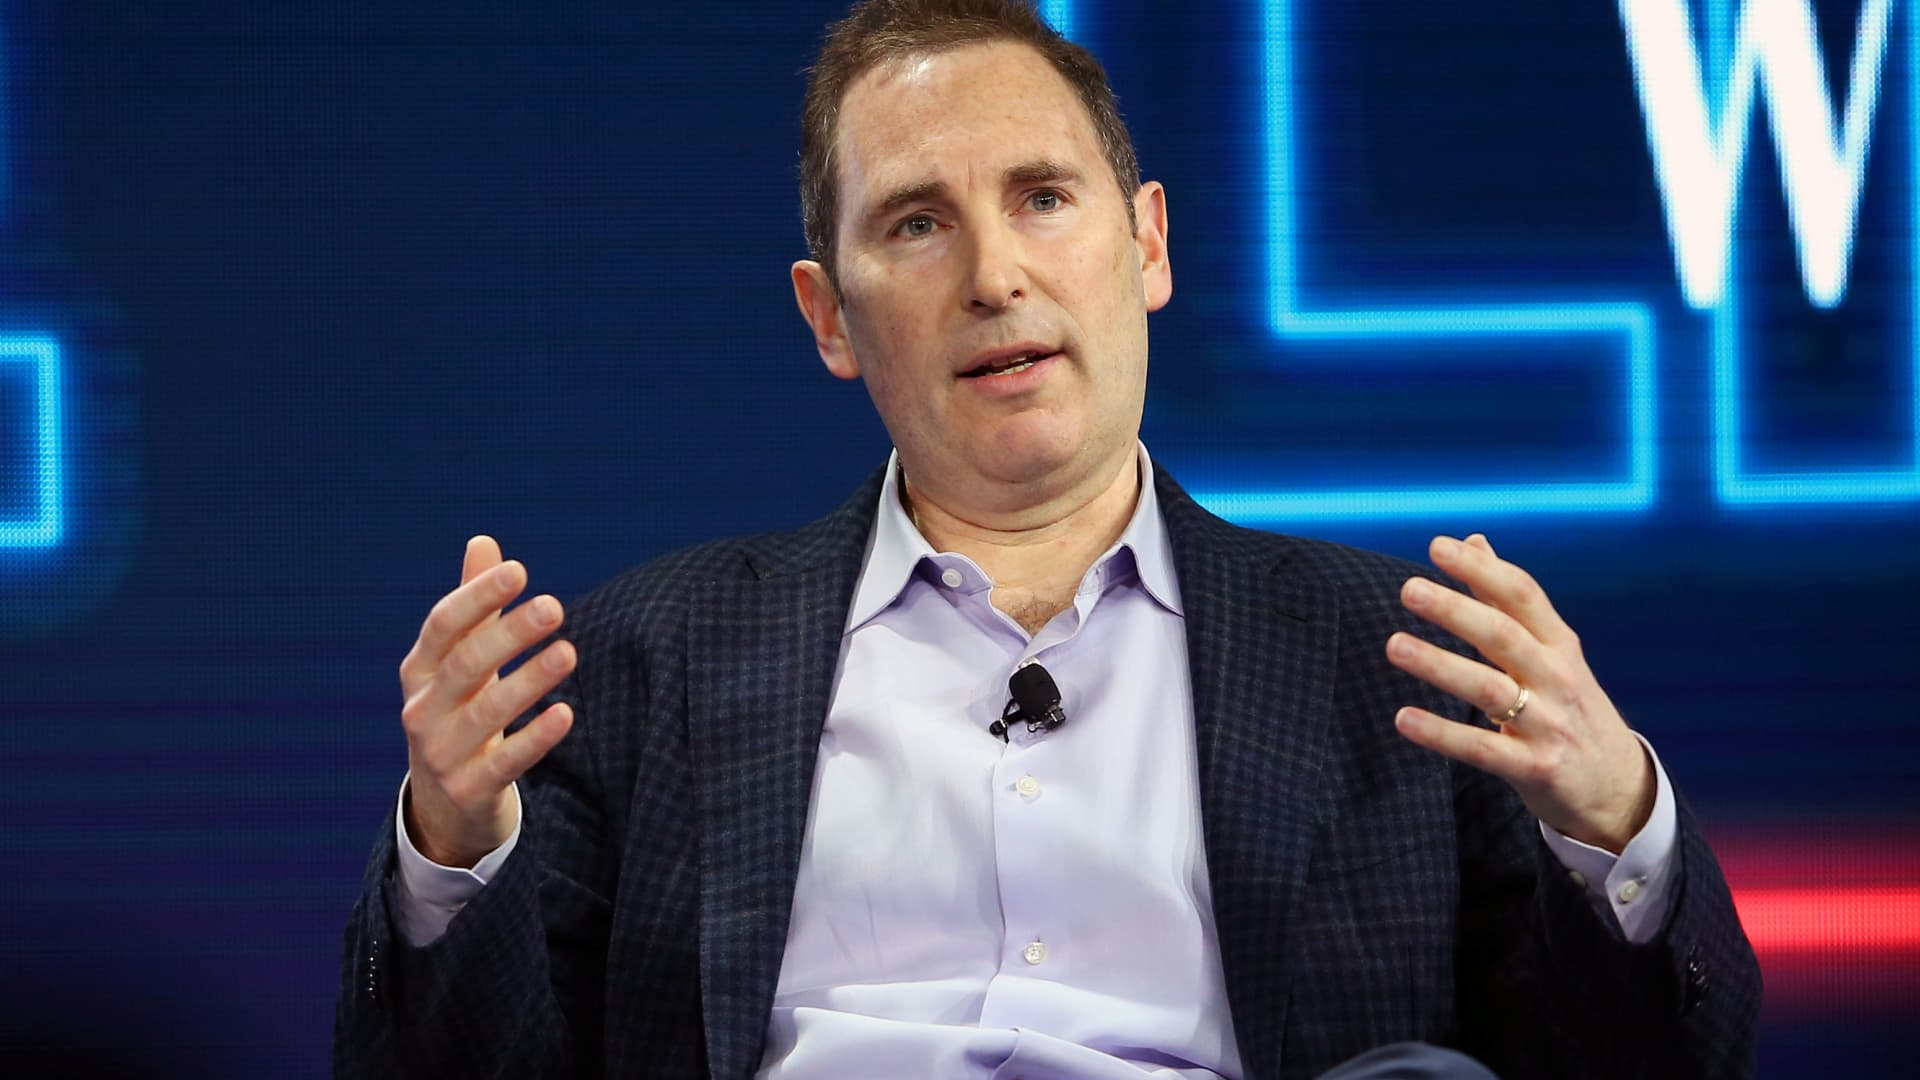 Andy Jassy, CEO Amazon Web Services, speaks at the WSJD Live conference in Laguna Beach, California, October 25, 2016.